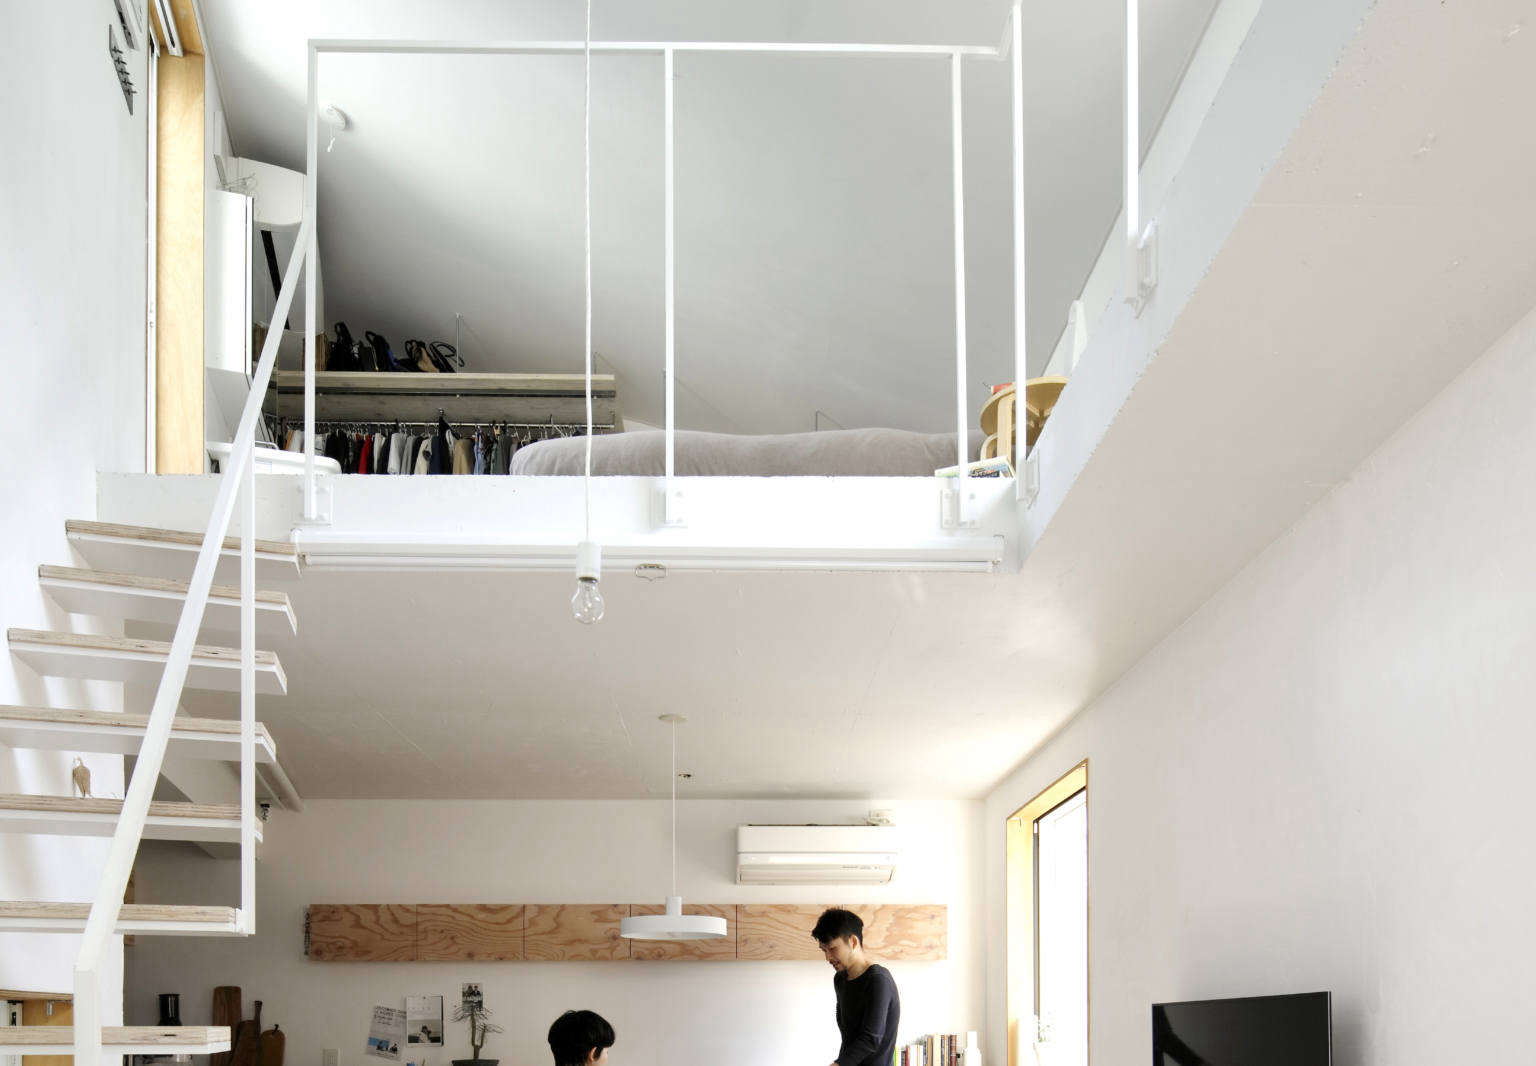 Vertical Alley: A Live/Work Tower for Two in Tokyo